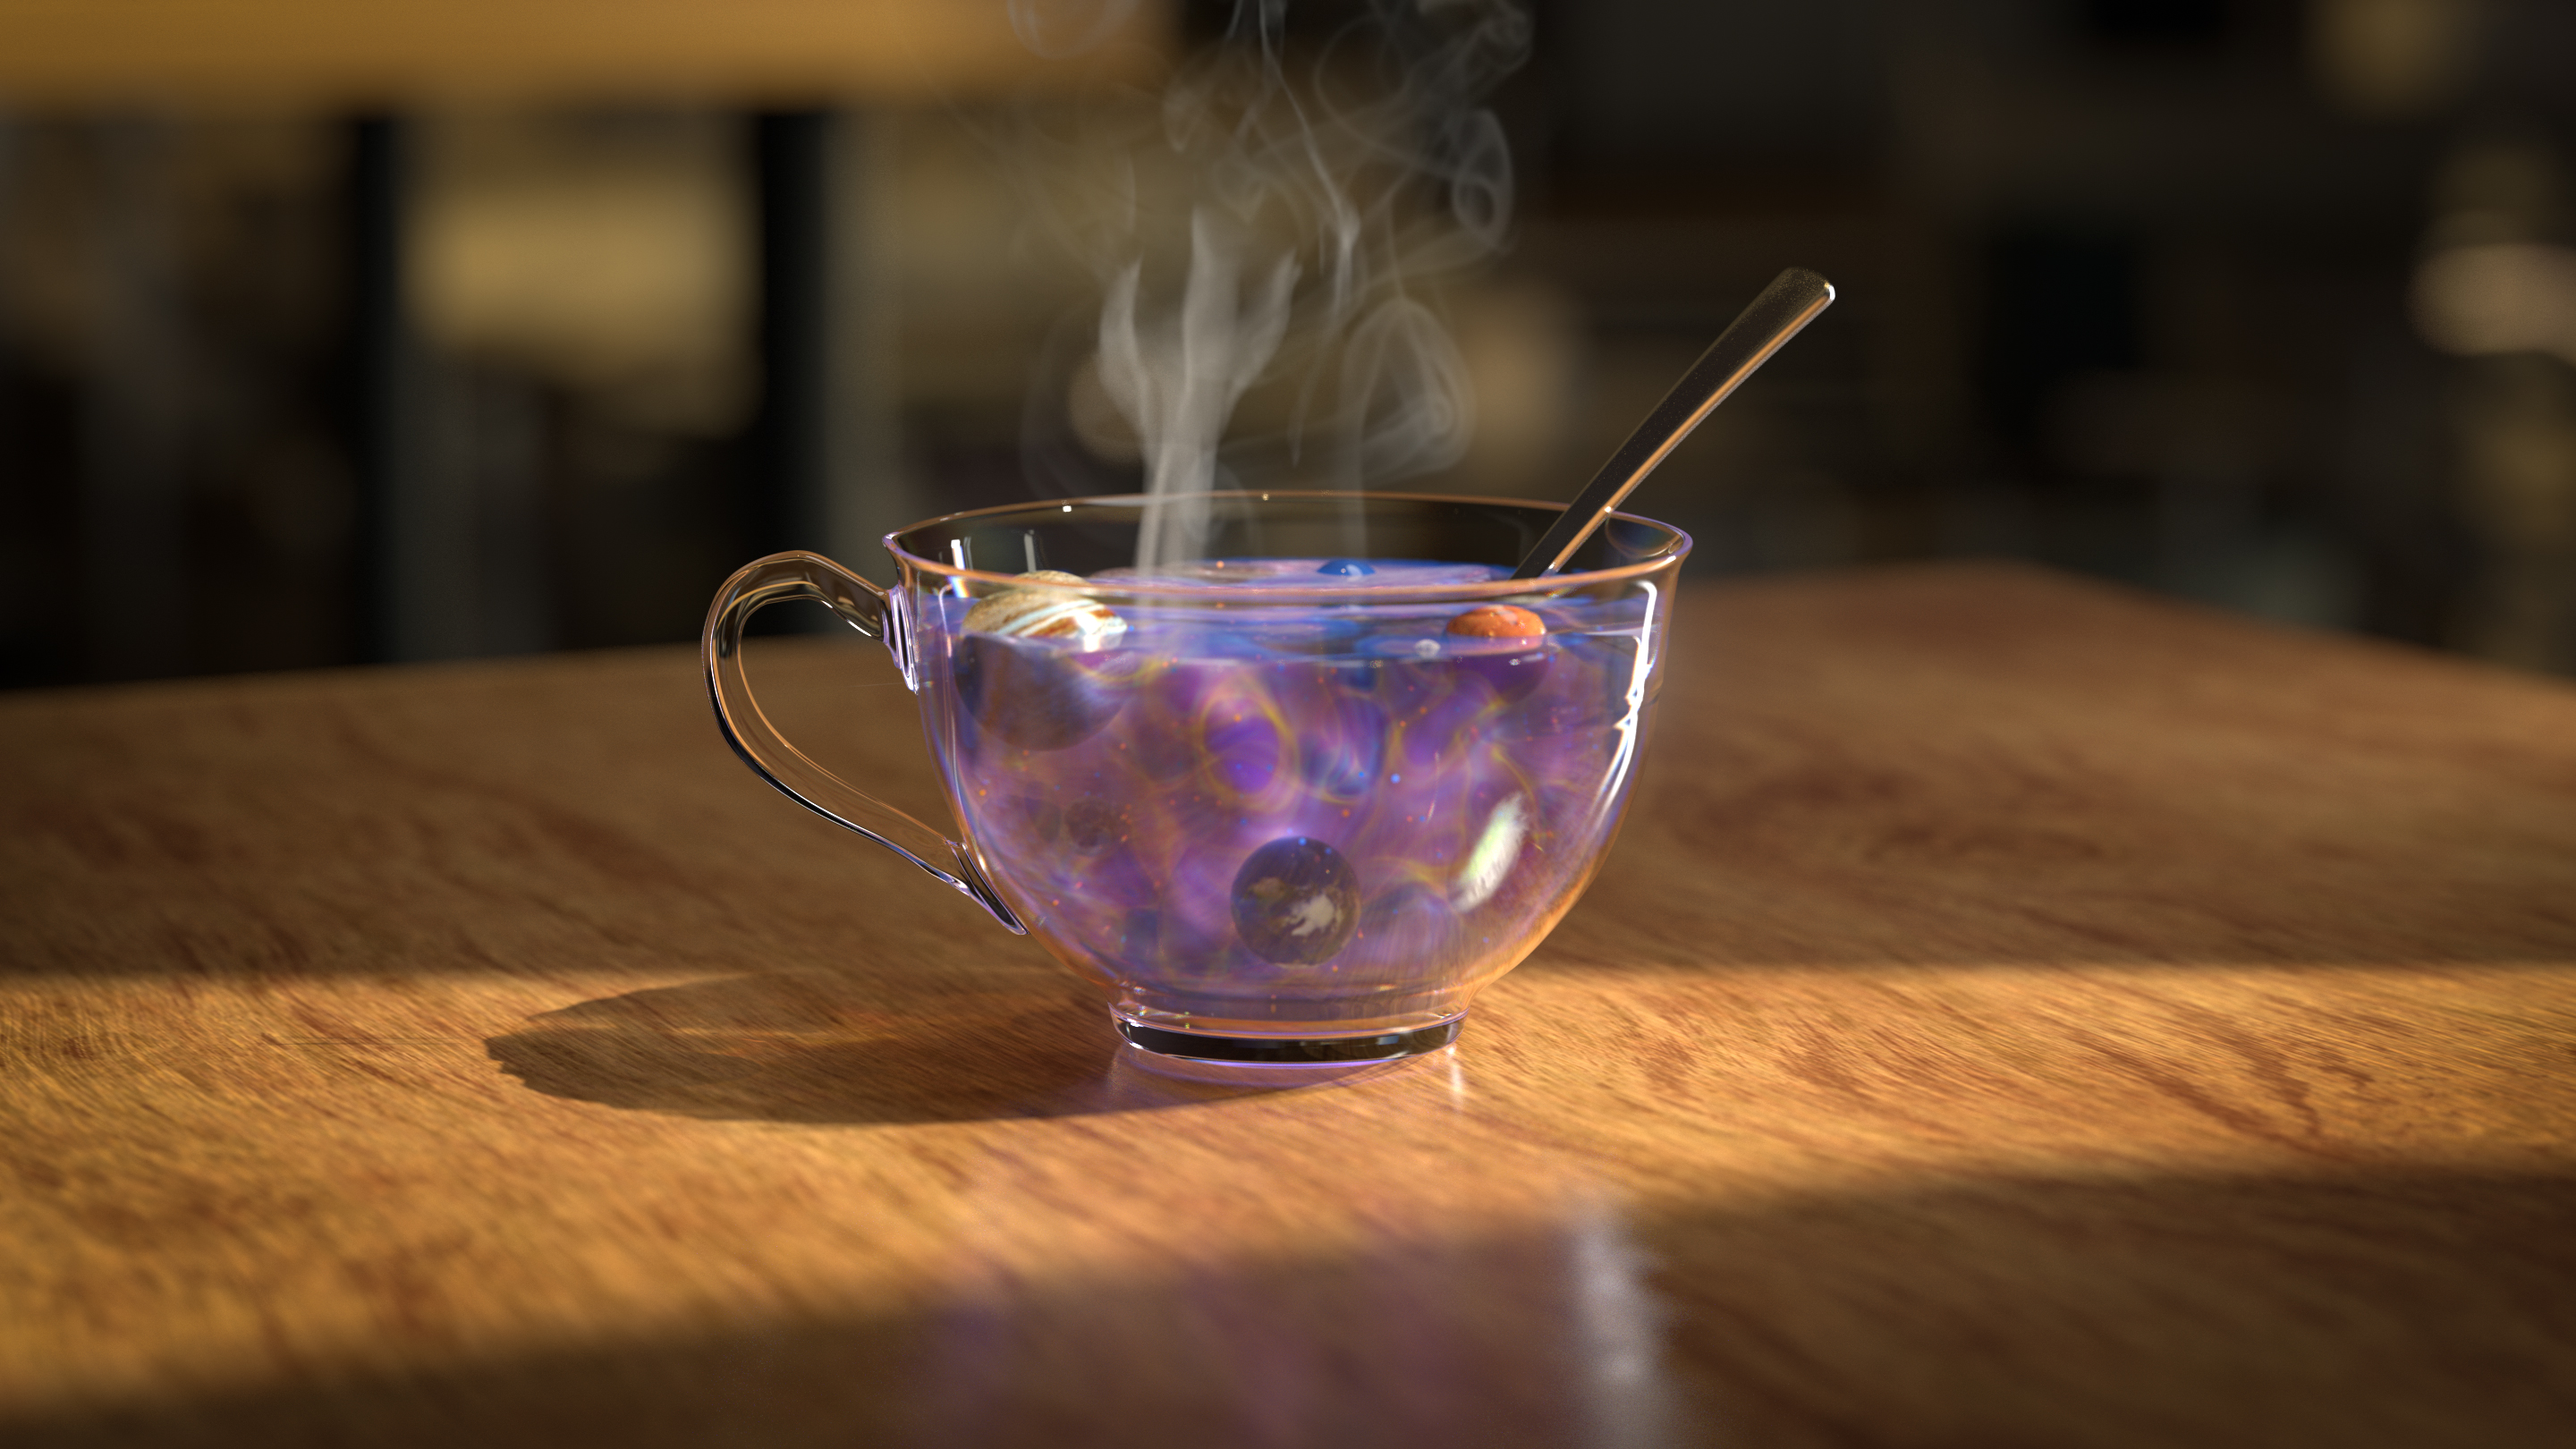 "Art for ""The Universal Law That Aims Time's Arrow"": a 3-D illustration of a clear glass coffee mug, filled with a mysterious purple and blue fluid, planets floating in it, with a spoon poking out the side. There is also steam rising from the cup's contents."